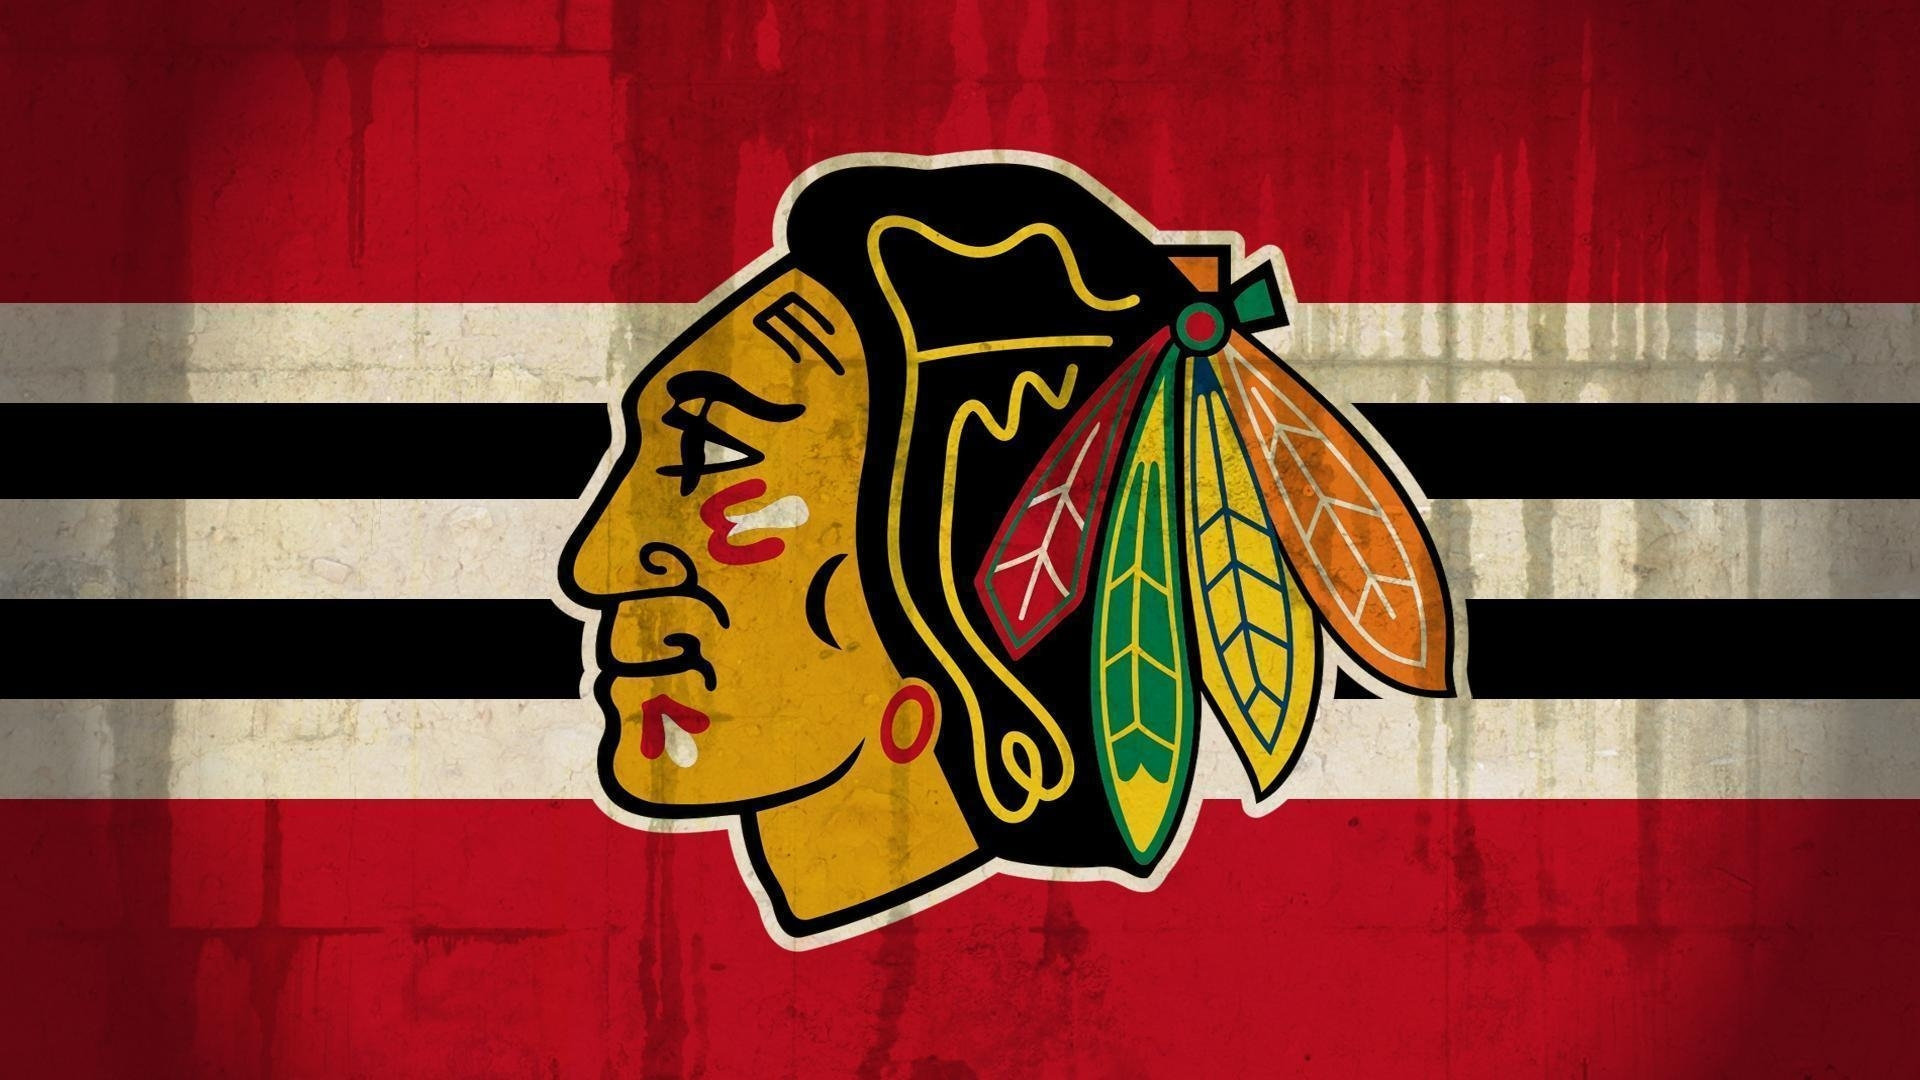 chicago blackhawks desktop backgrounds - wallpaper cave